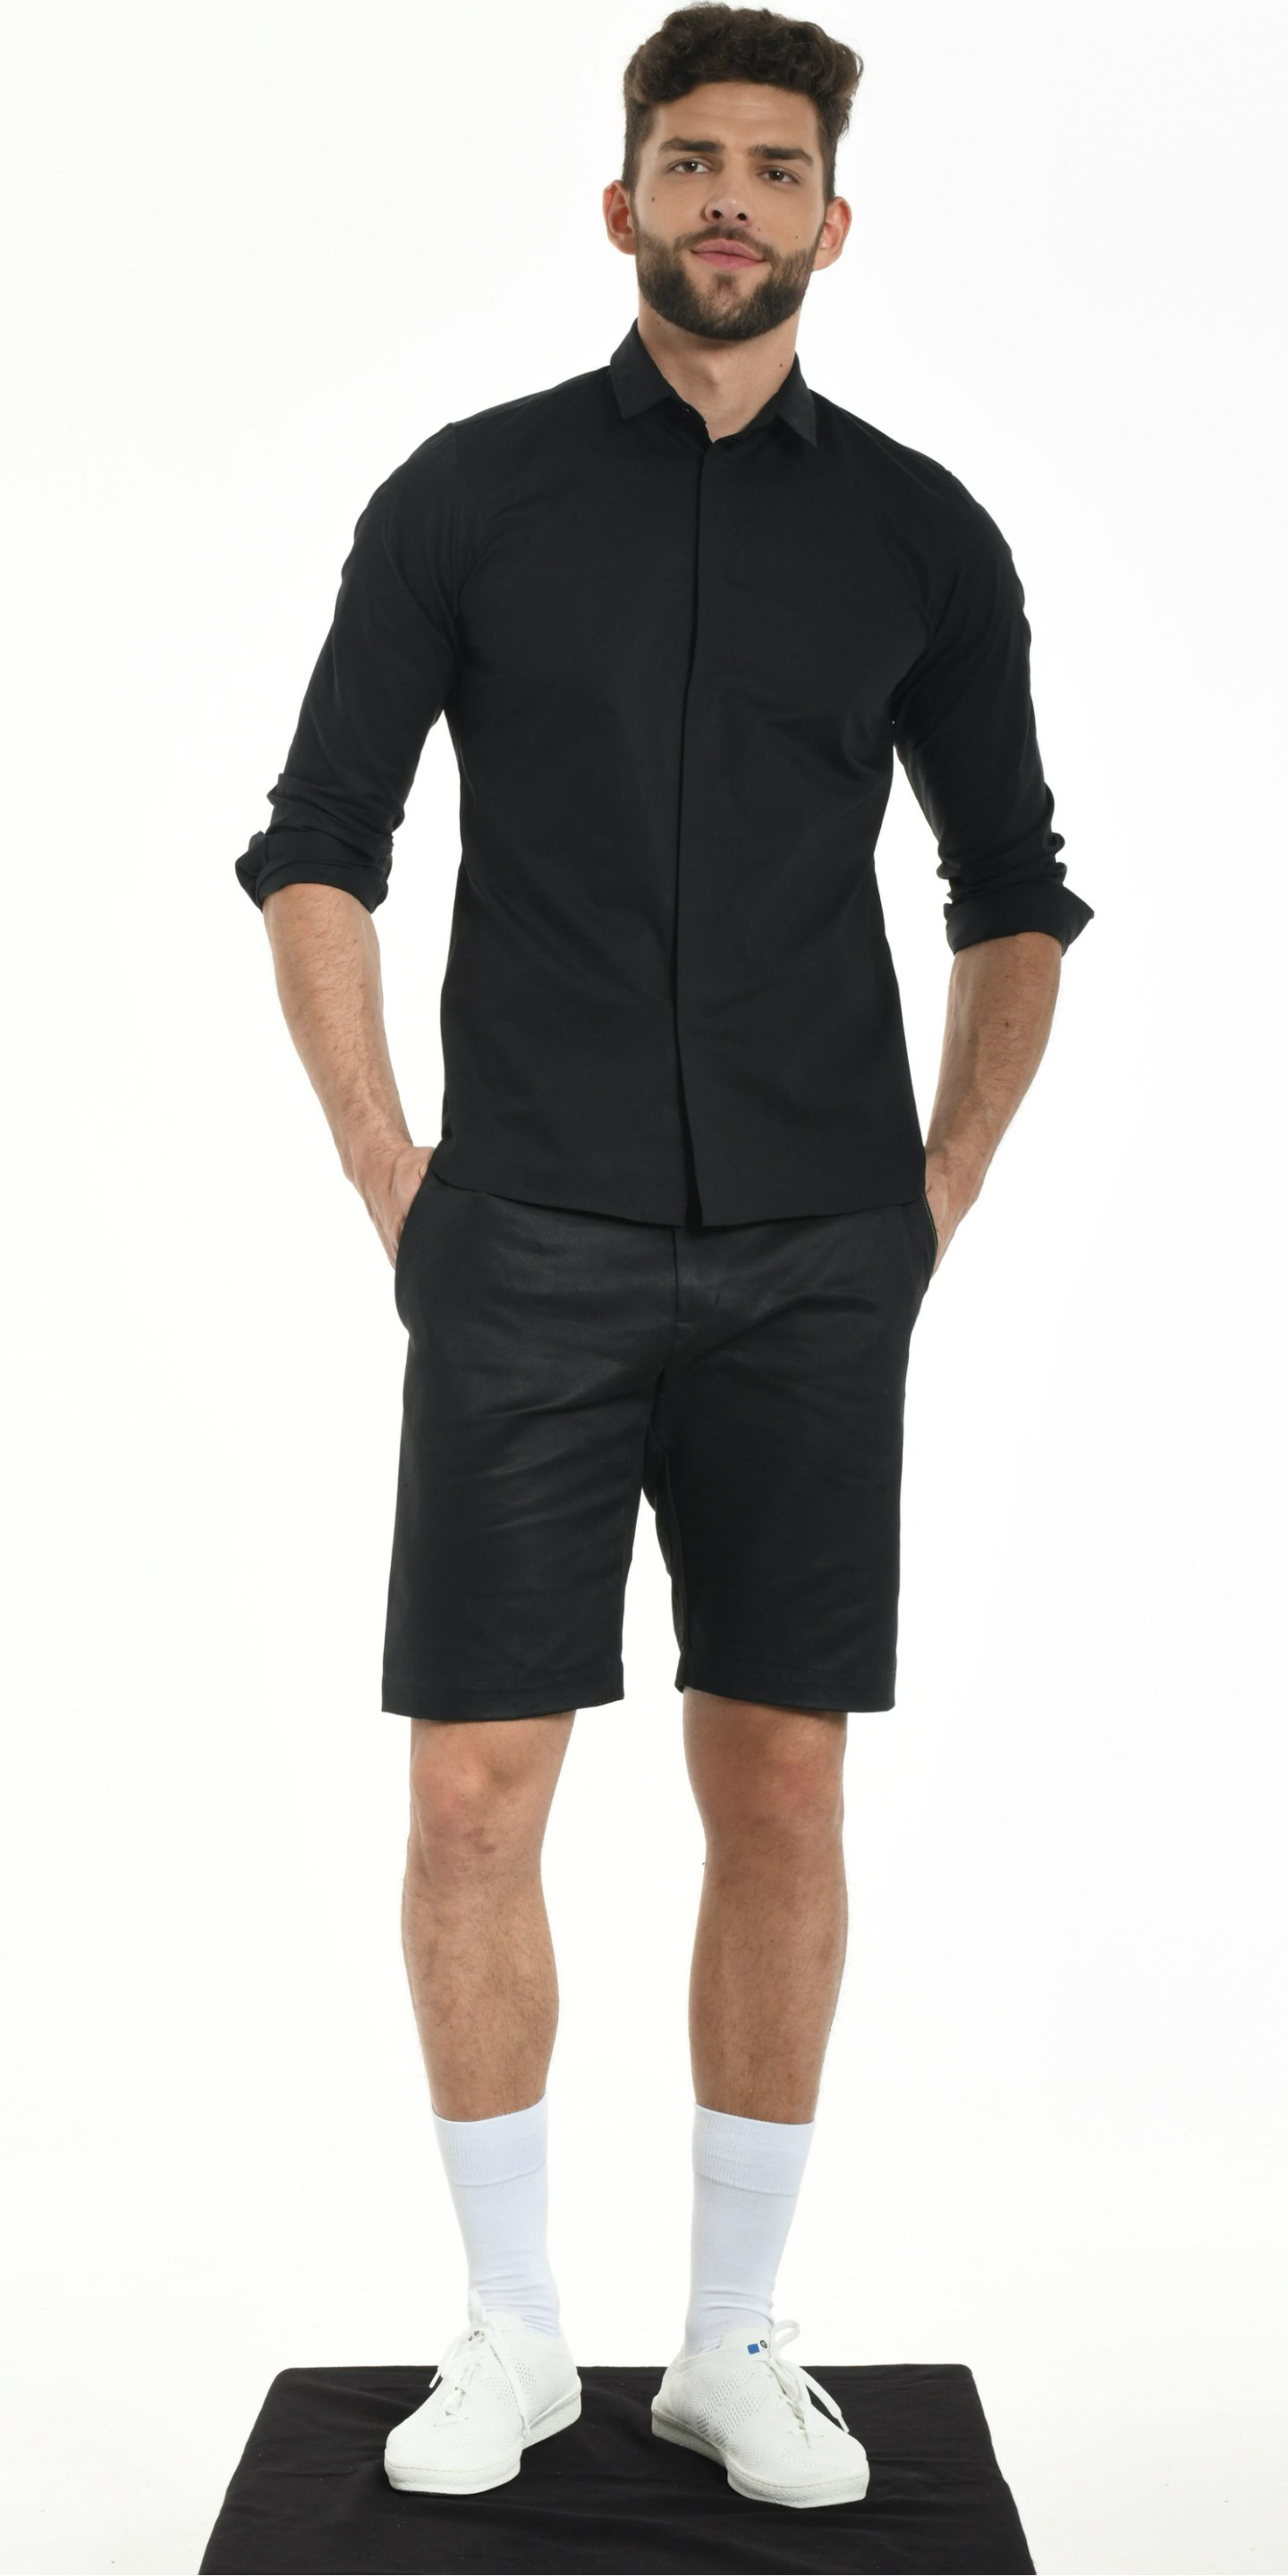 SHORT BLACK  WITH YELLOW SEWING from BEARD & FRINGE